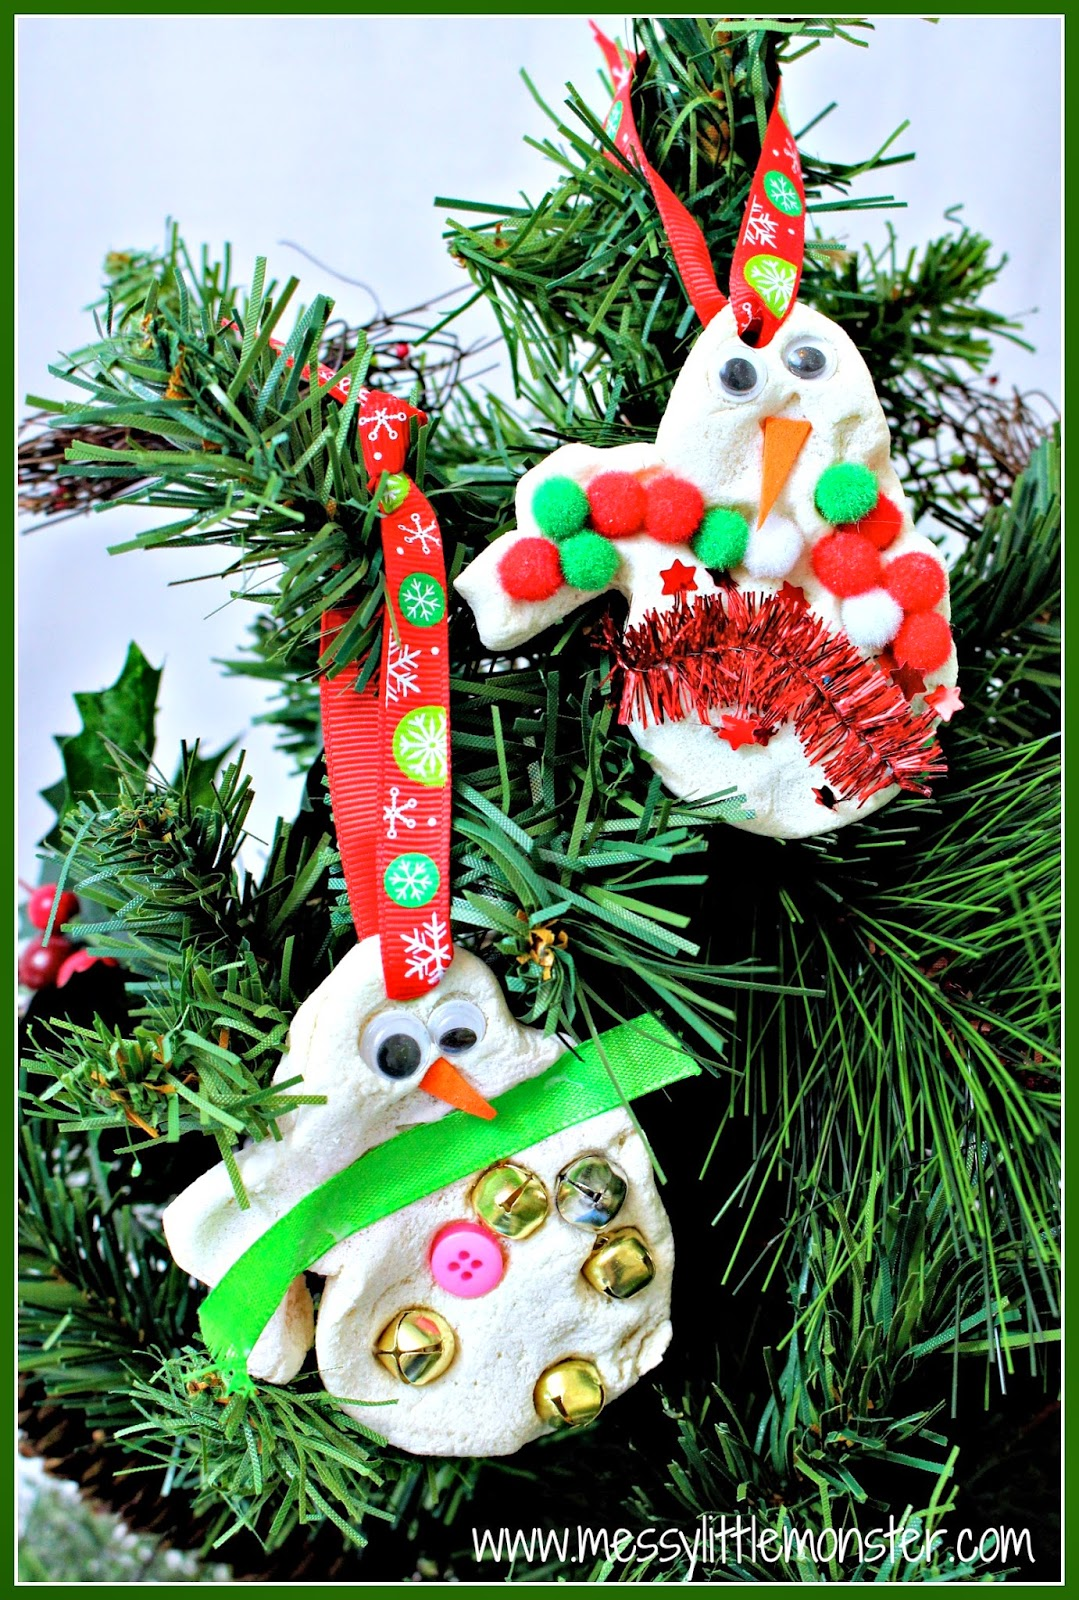 Snowman Christmas Tree Decorations - Messy Little Monster